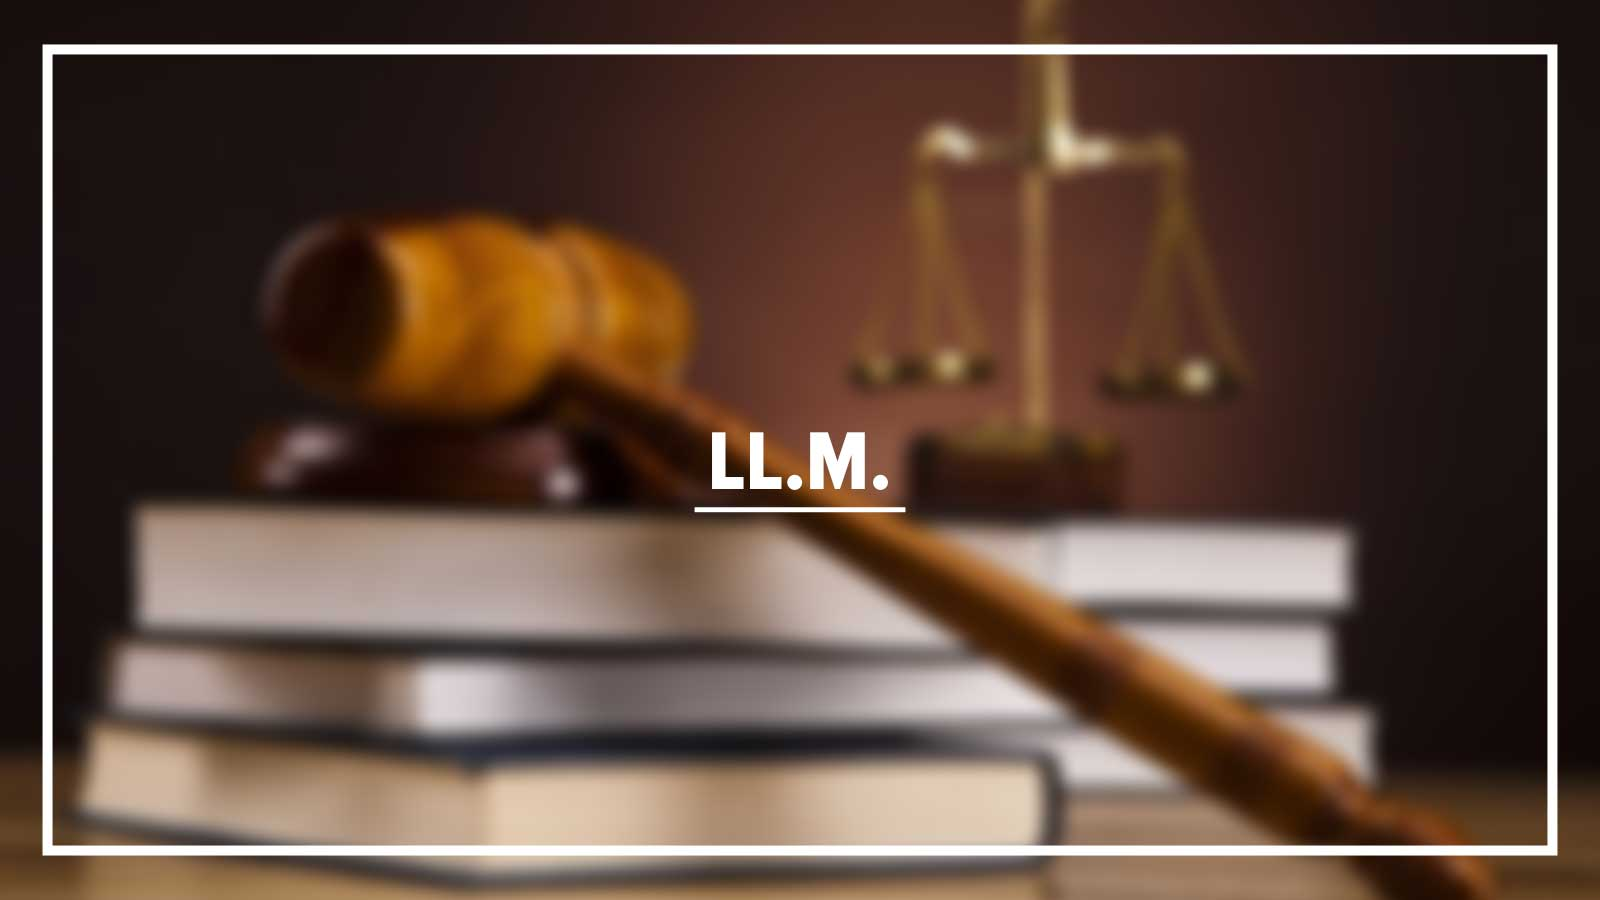 Master of Laws (LL.M.) Image